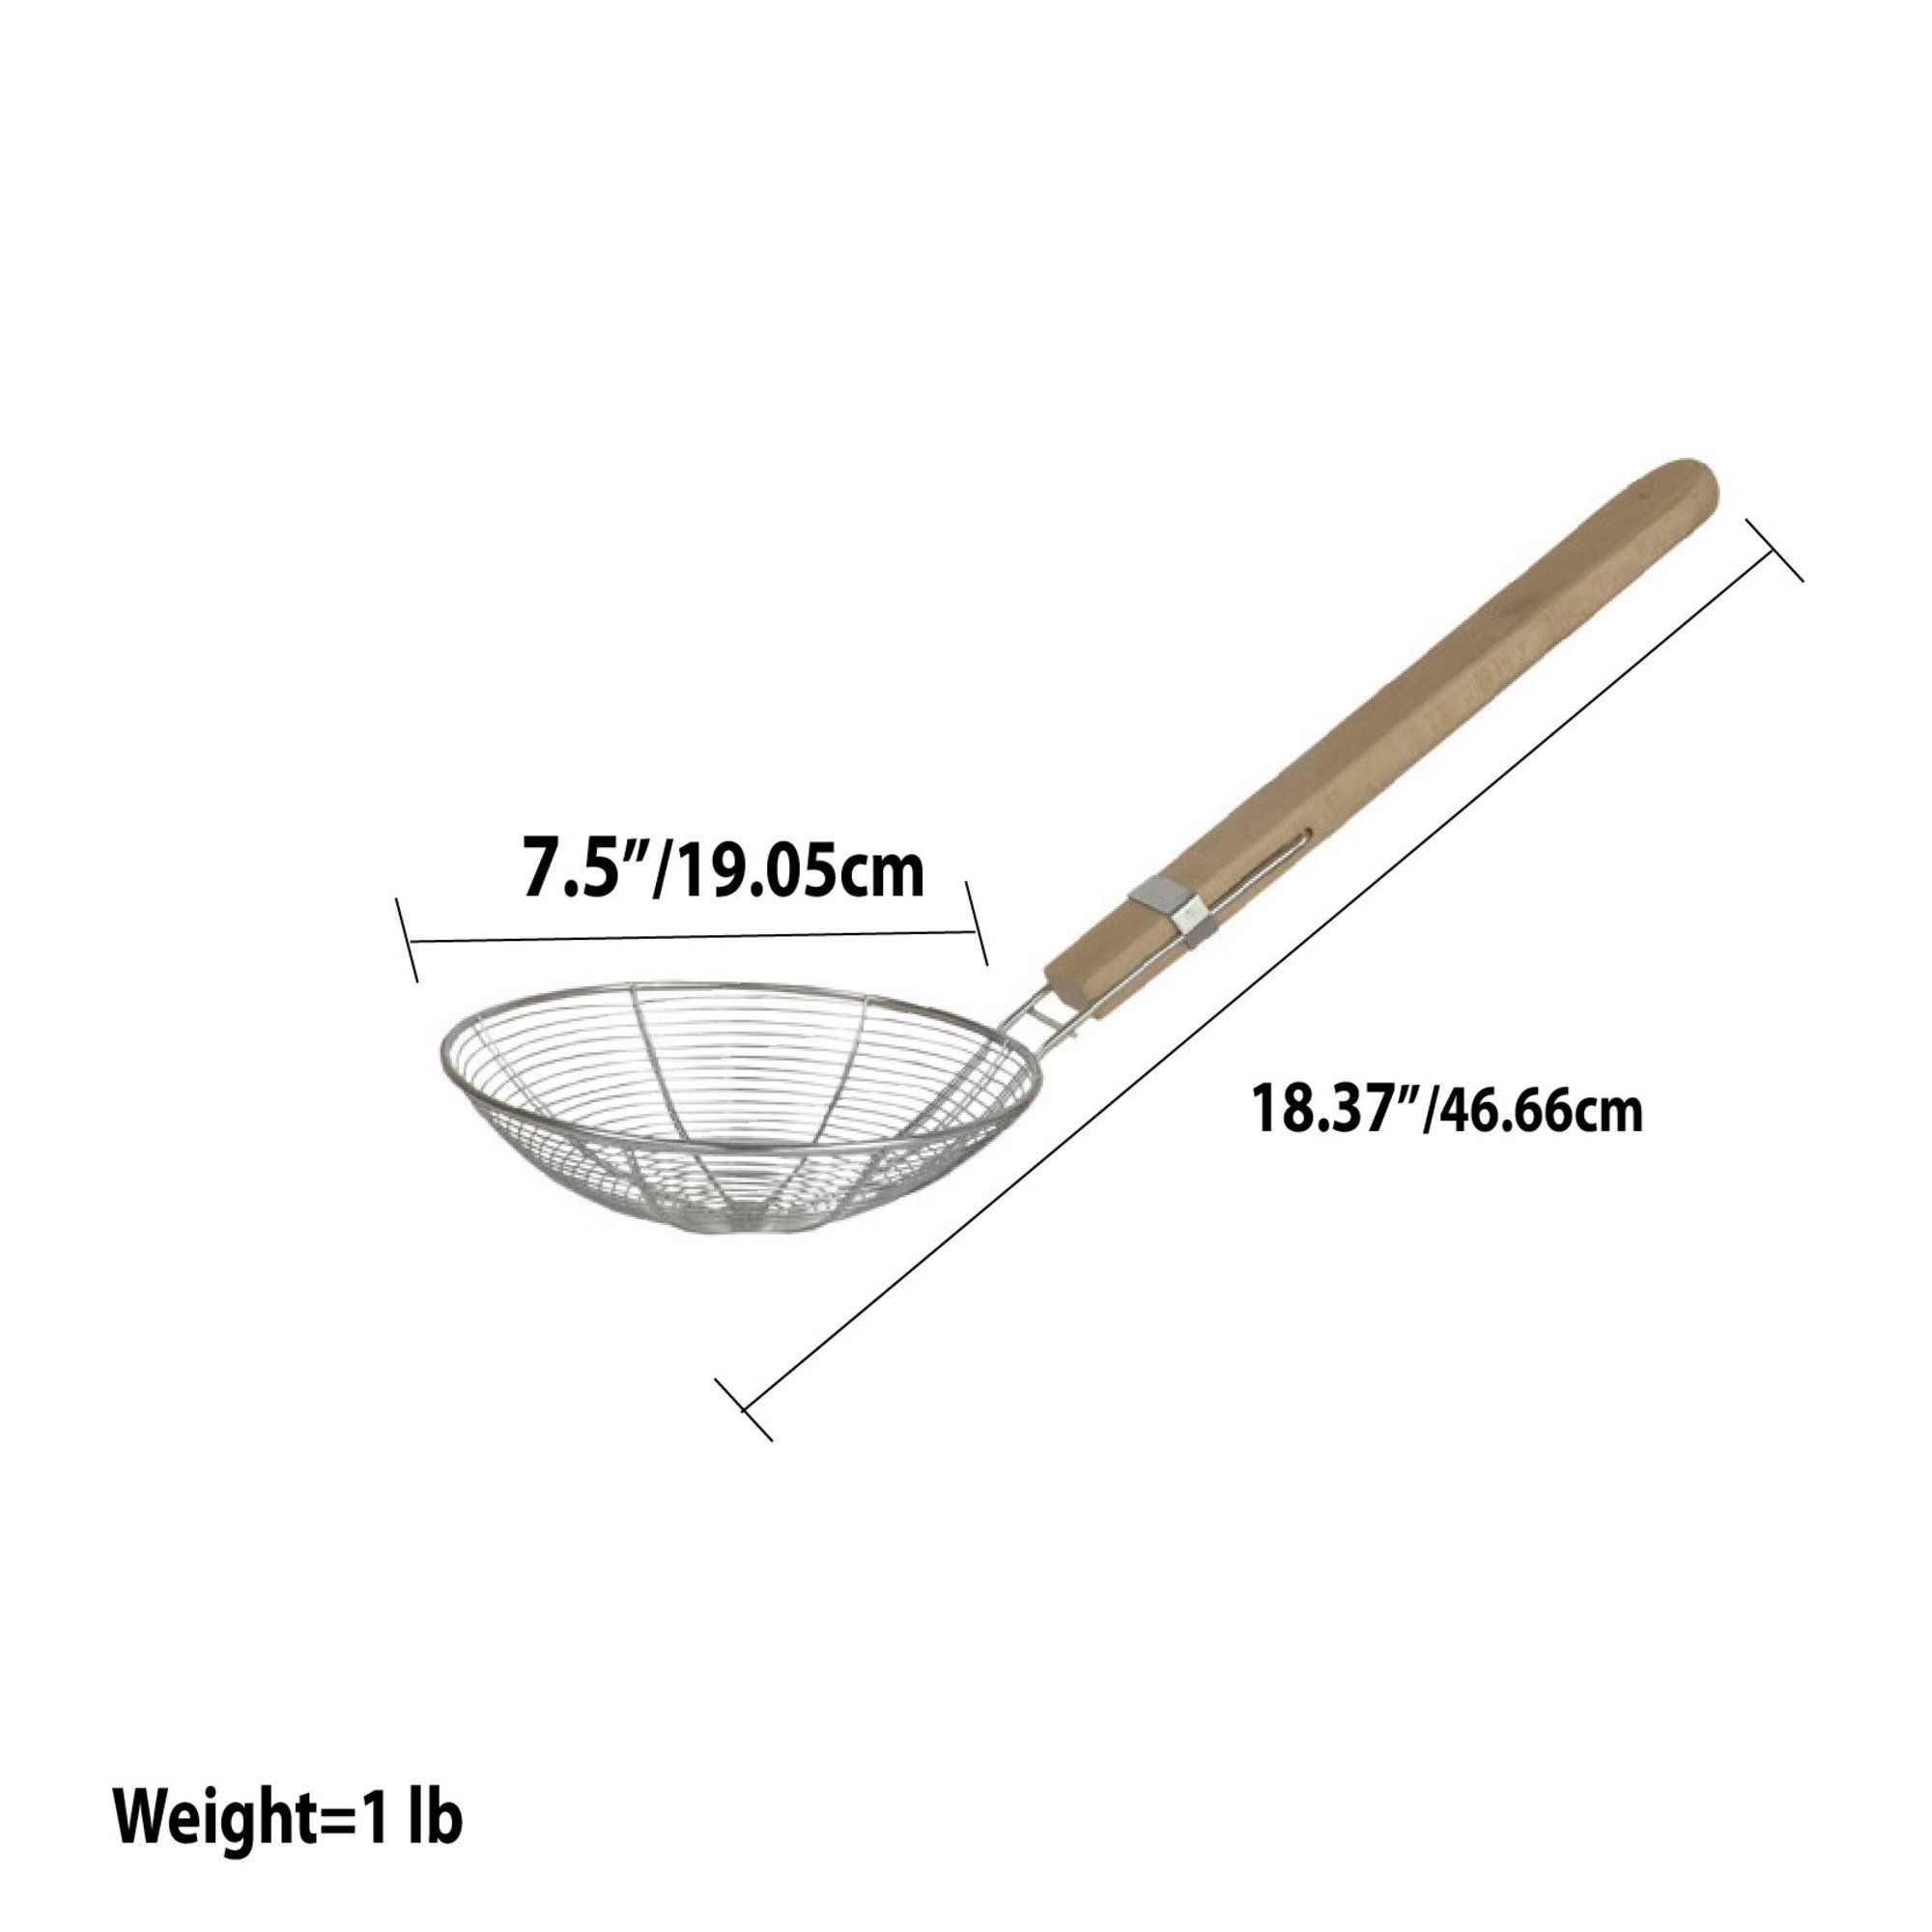 Home Basics Stainless Steel Strainer with Wooden Handle